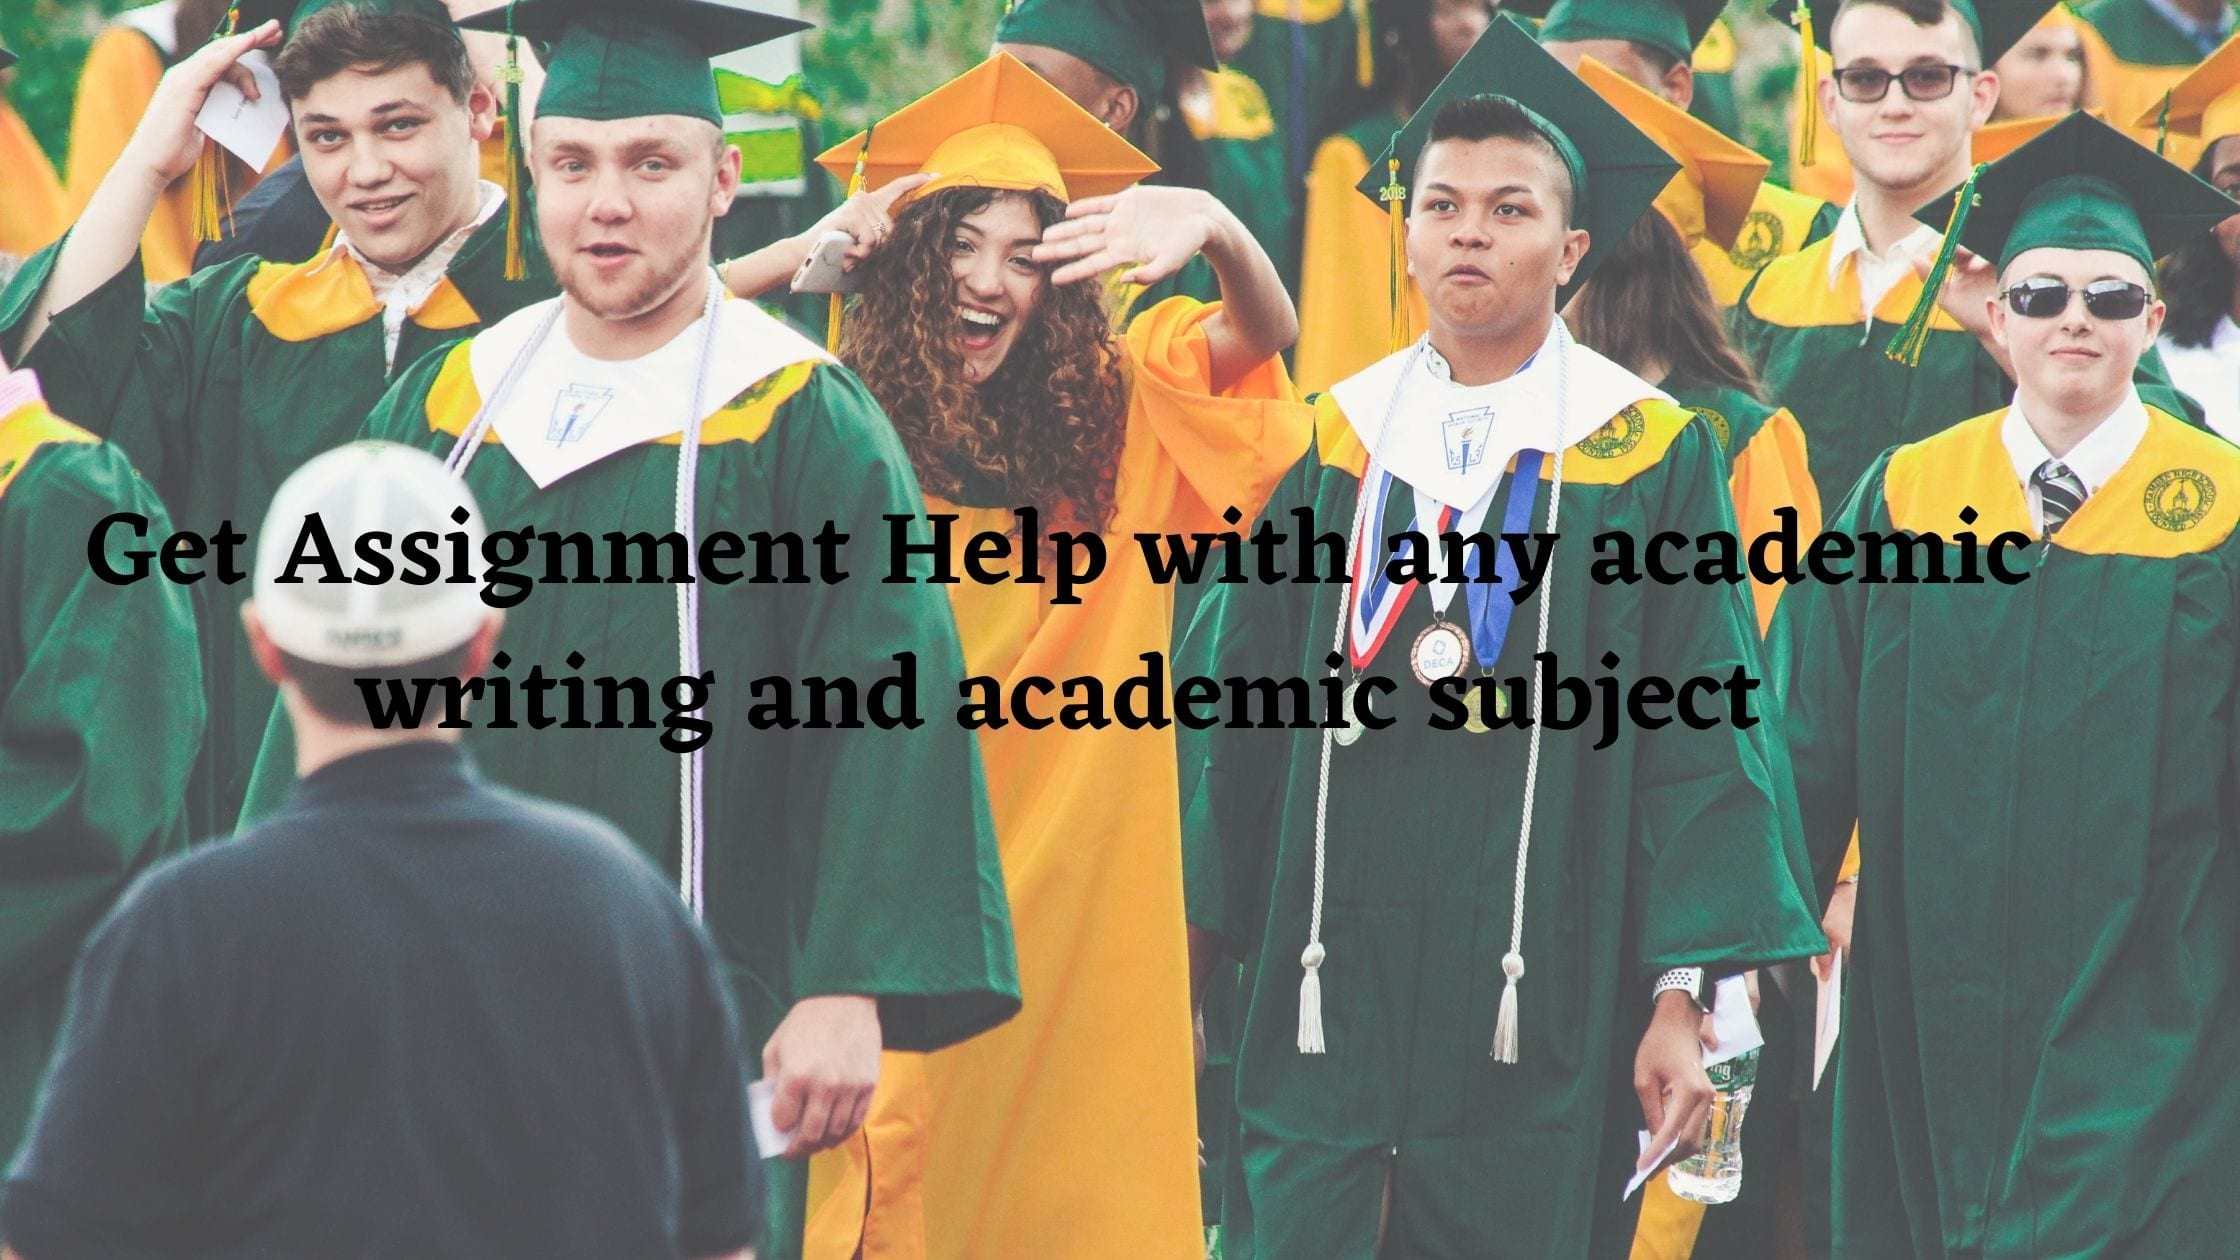 Get Assignment Help with any academic writing and academic subject